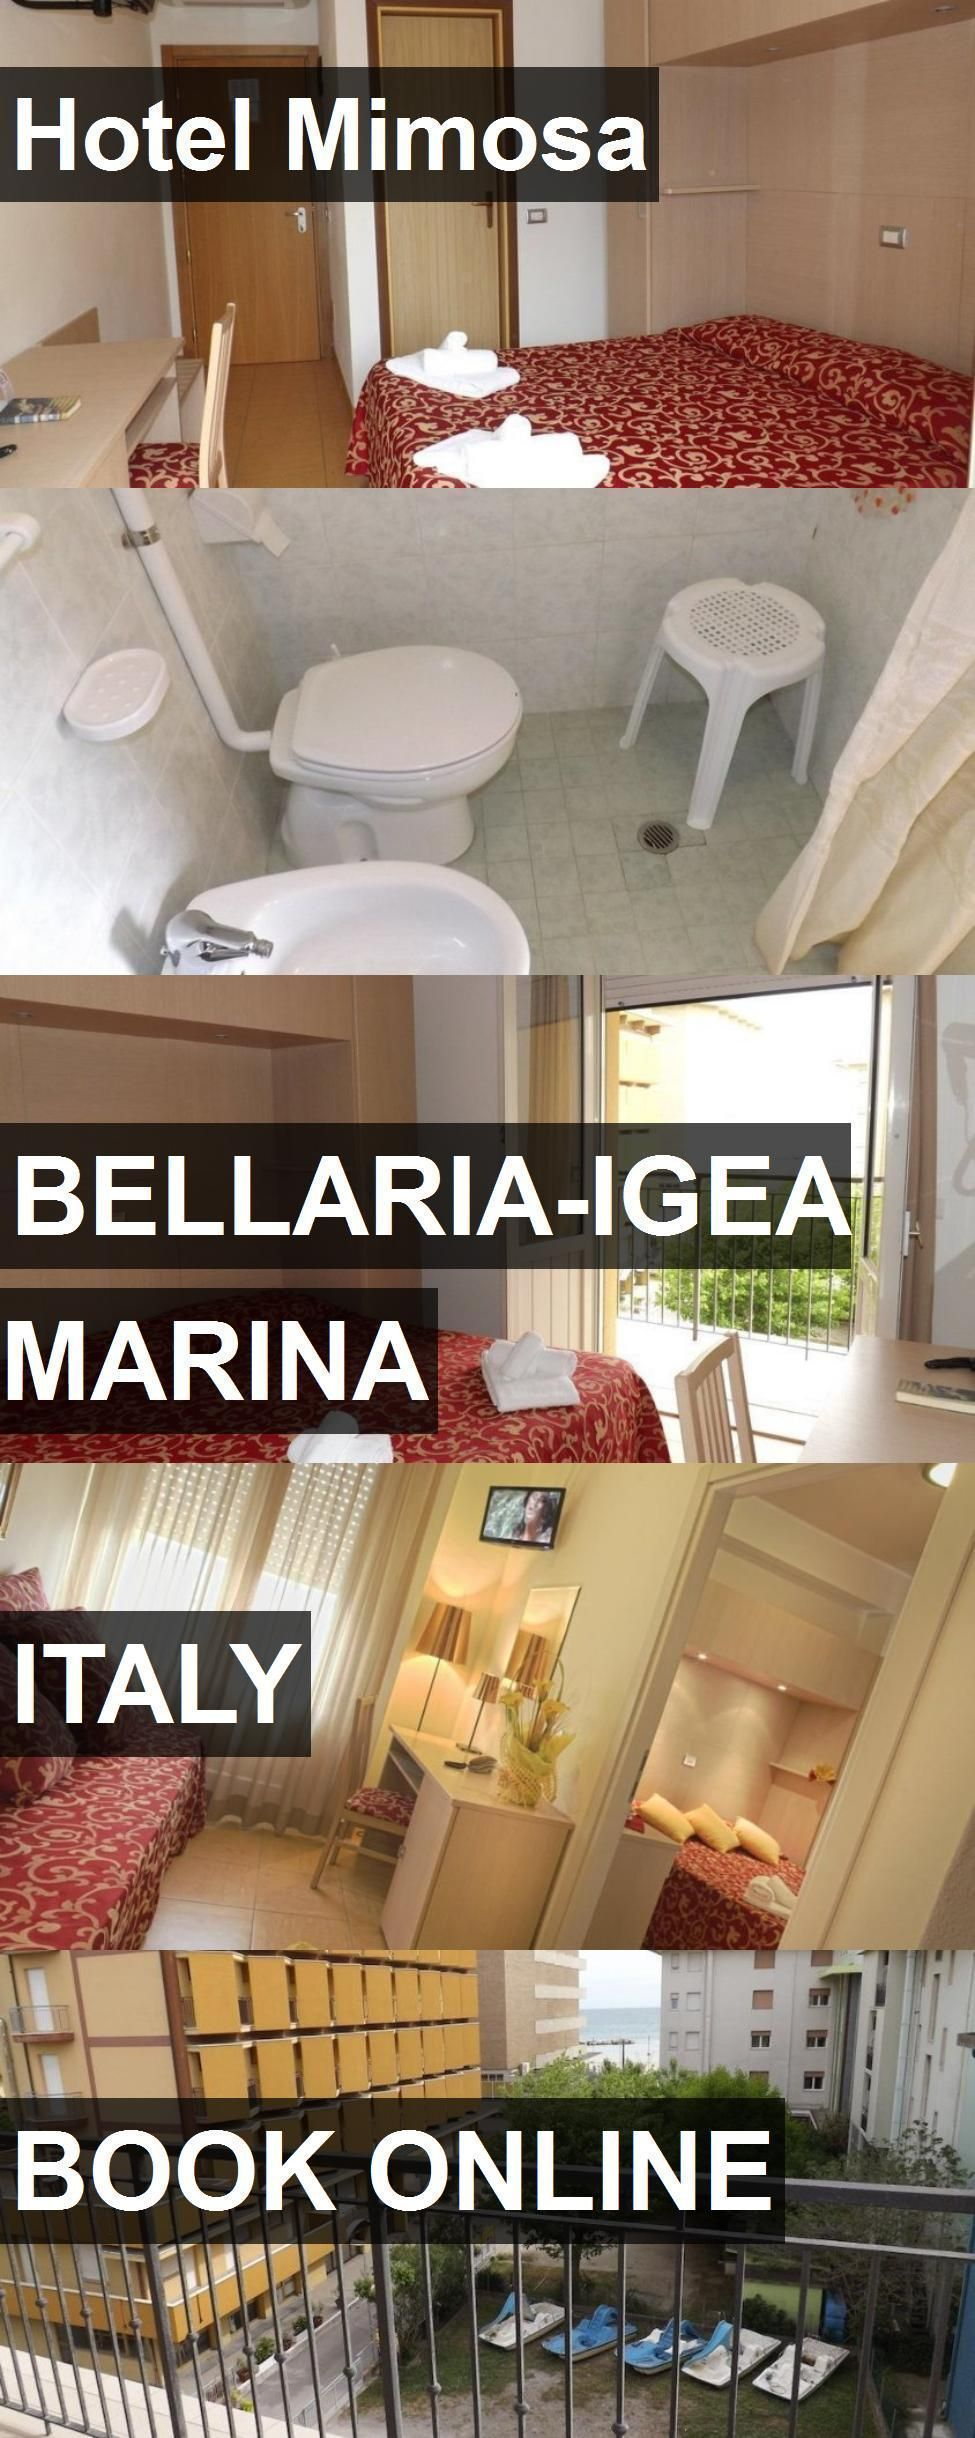 Hotel Mimosa in BellariaIgea Marina, Italy. For more